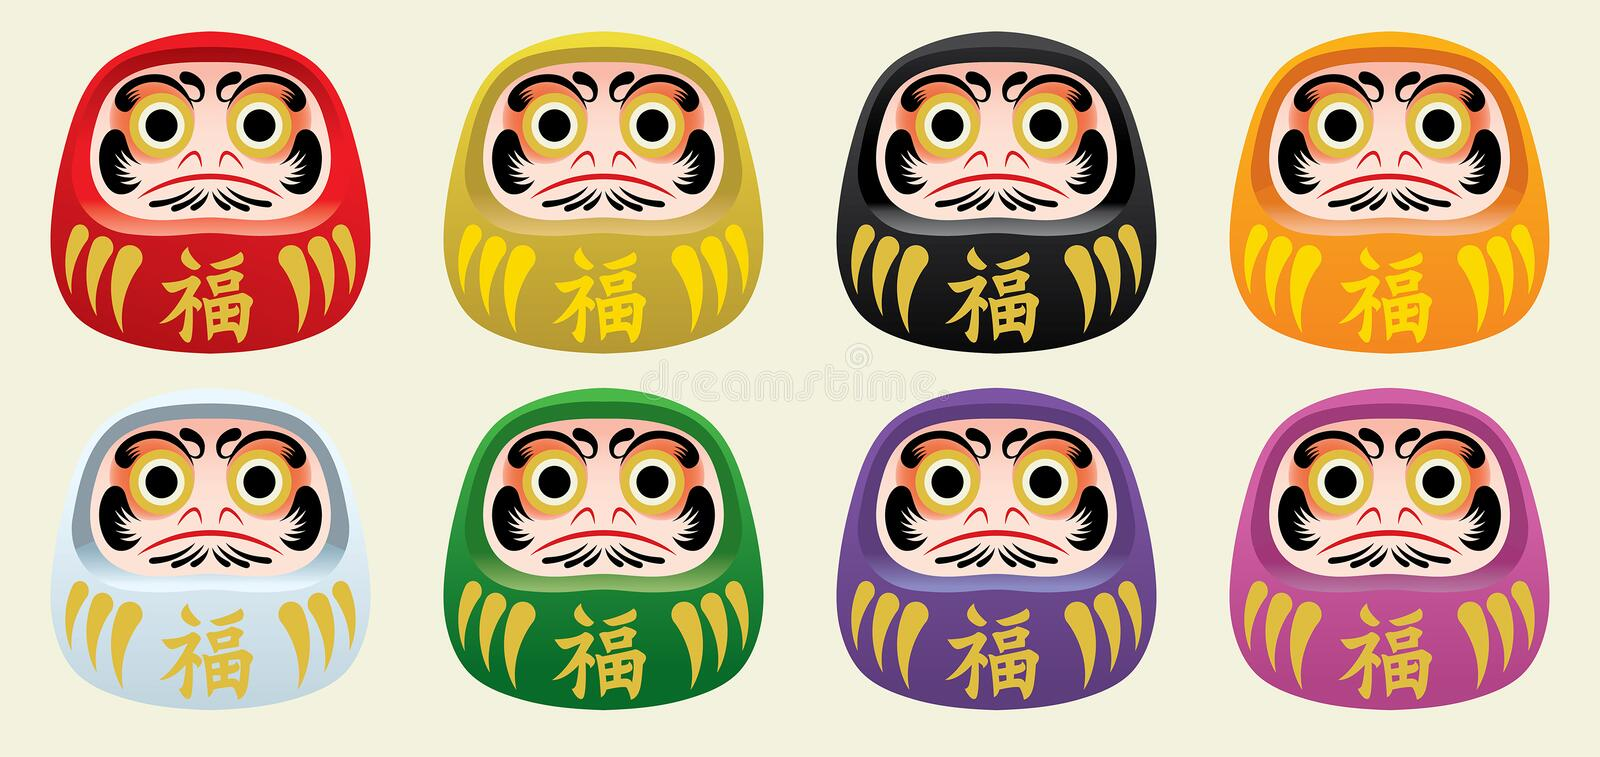 Ensemble de poupée du daruma du Japon illustration libre de droits